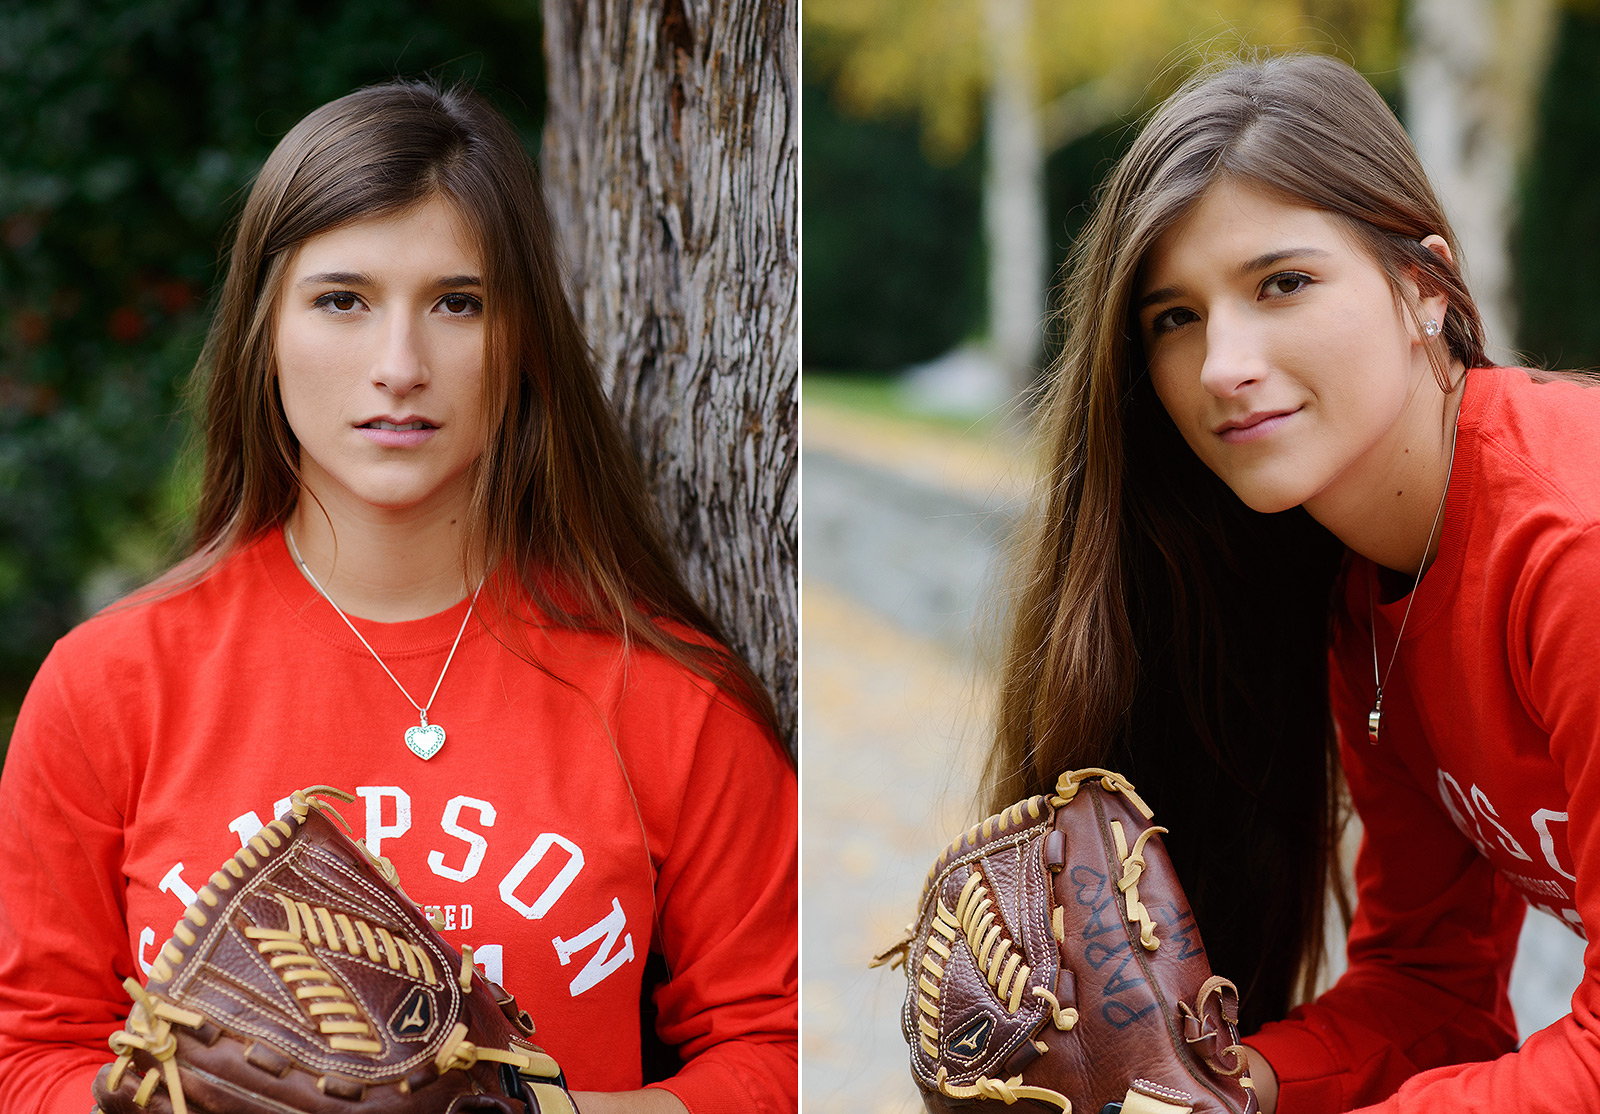 Senior girl portrait with softball mitt in Sacramento